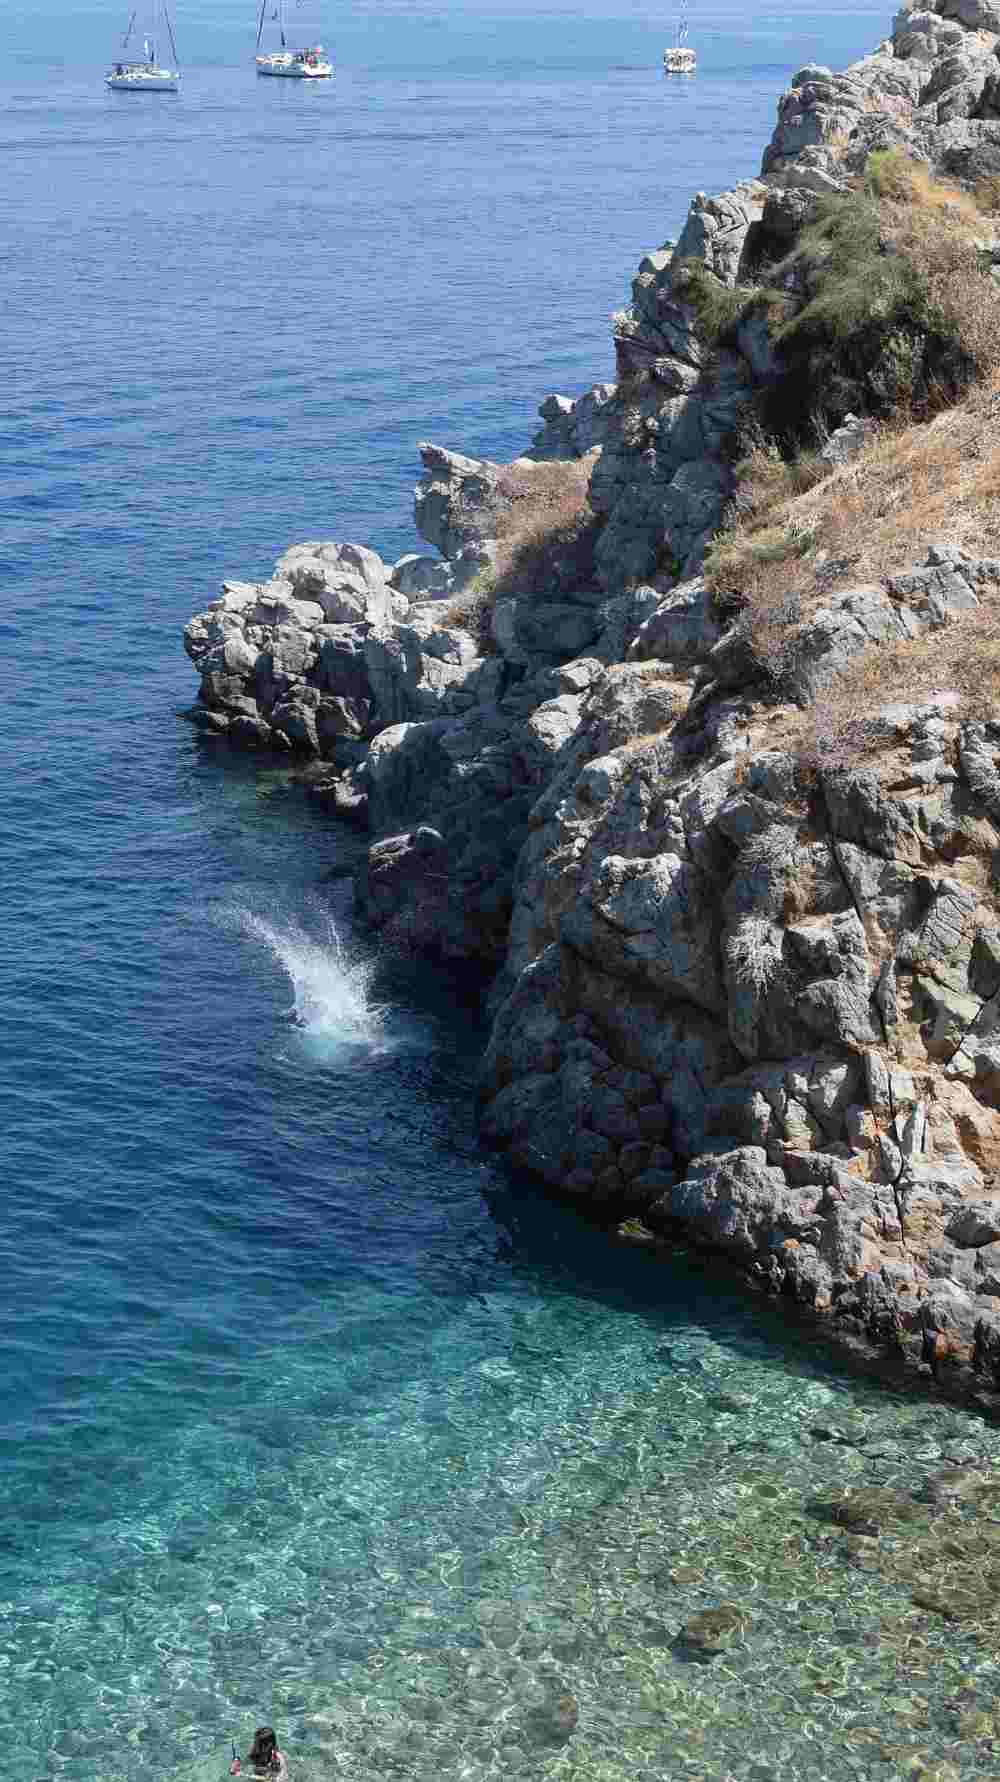 hydra-cliff-diving-aleksander-atmalex-6